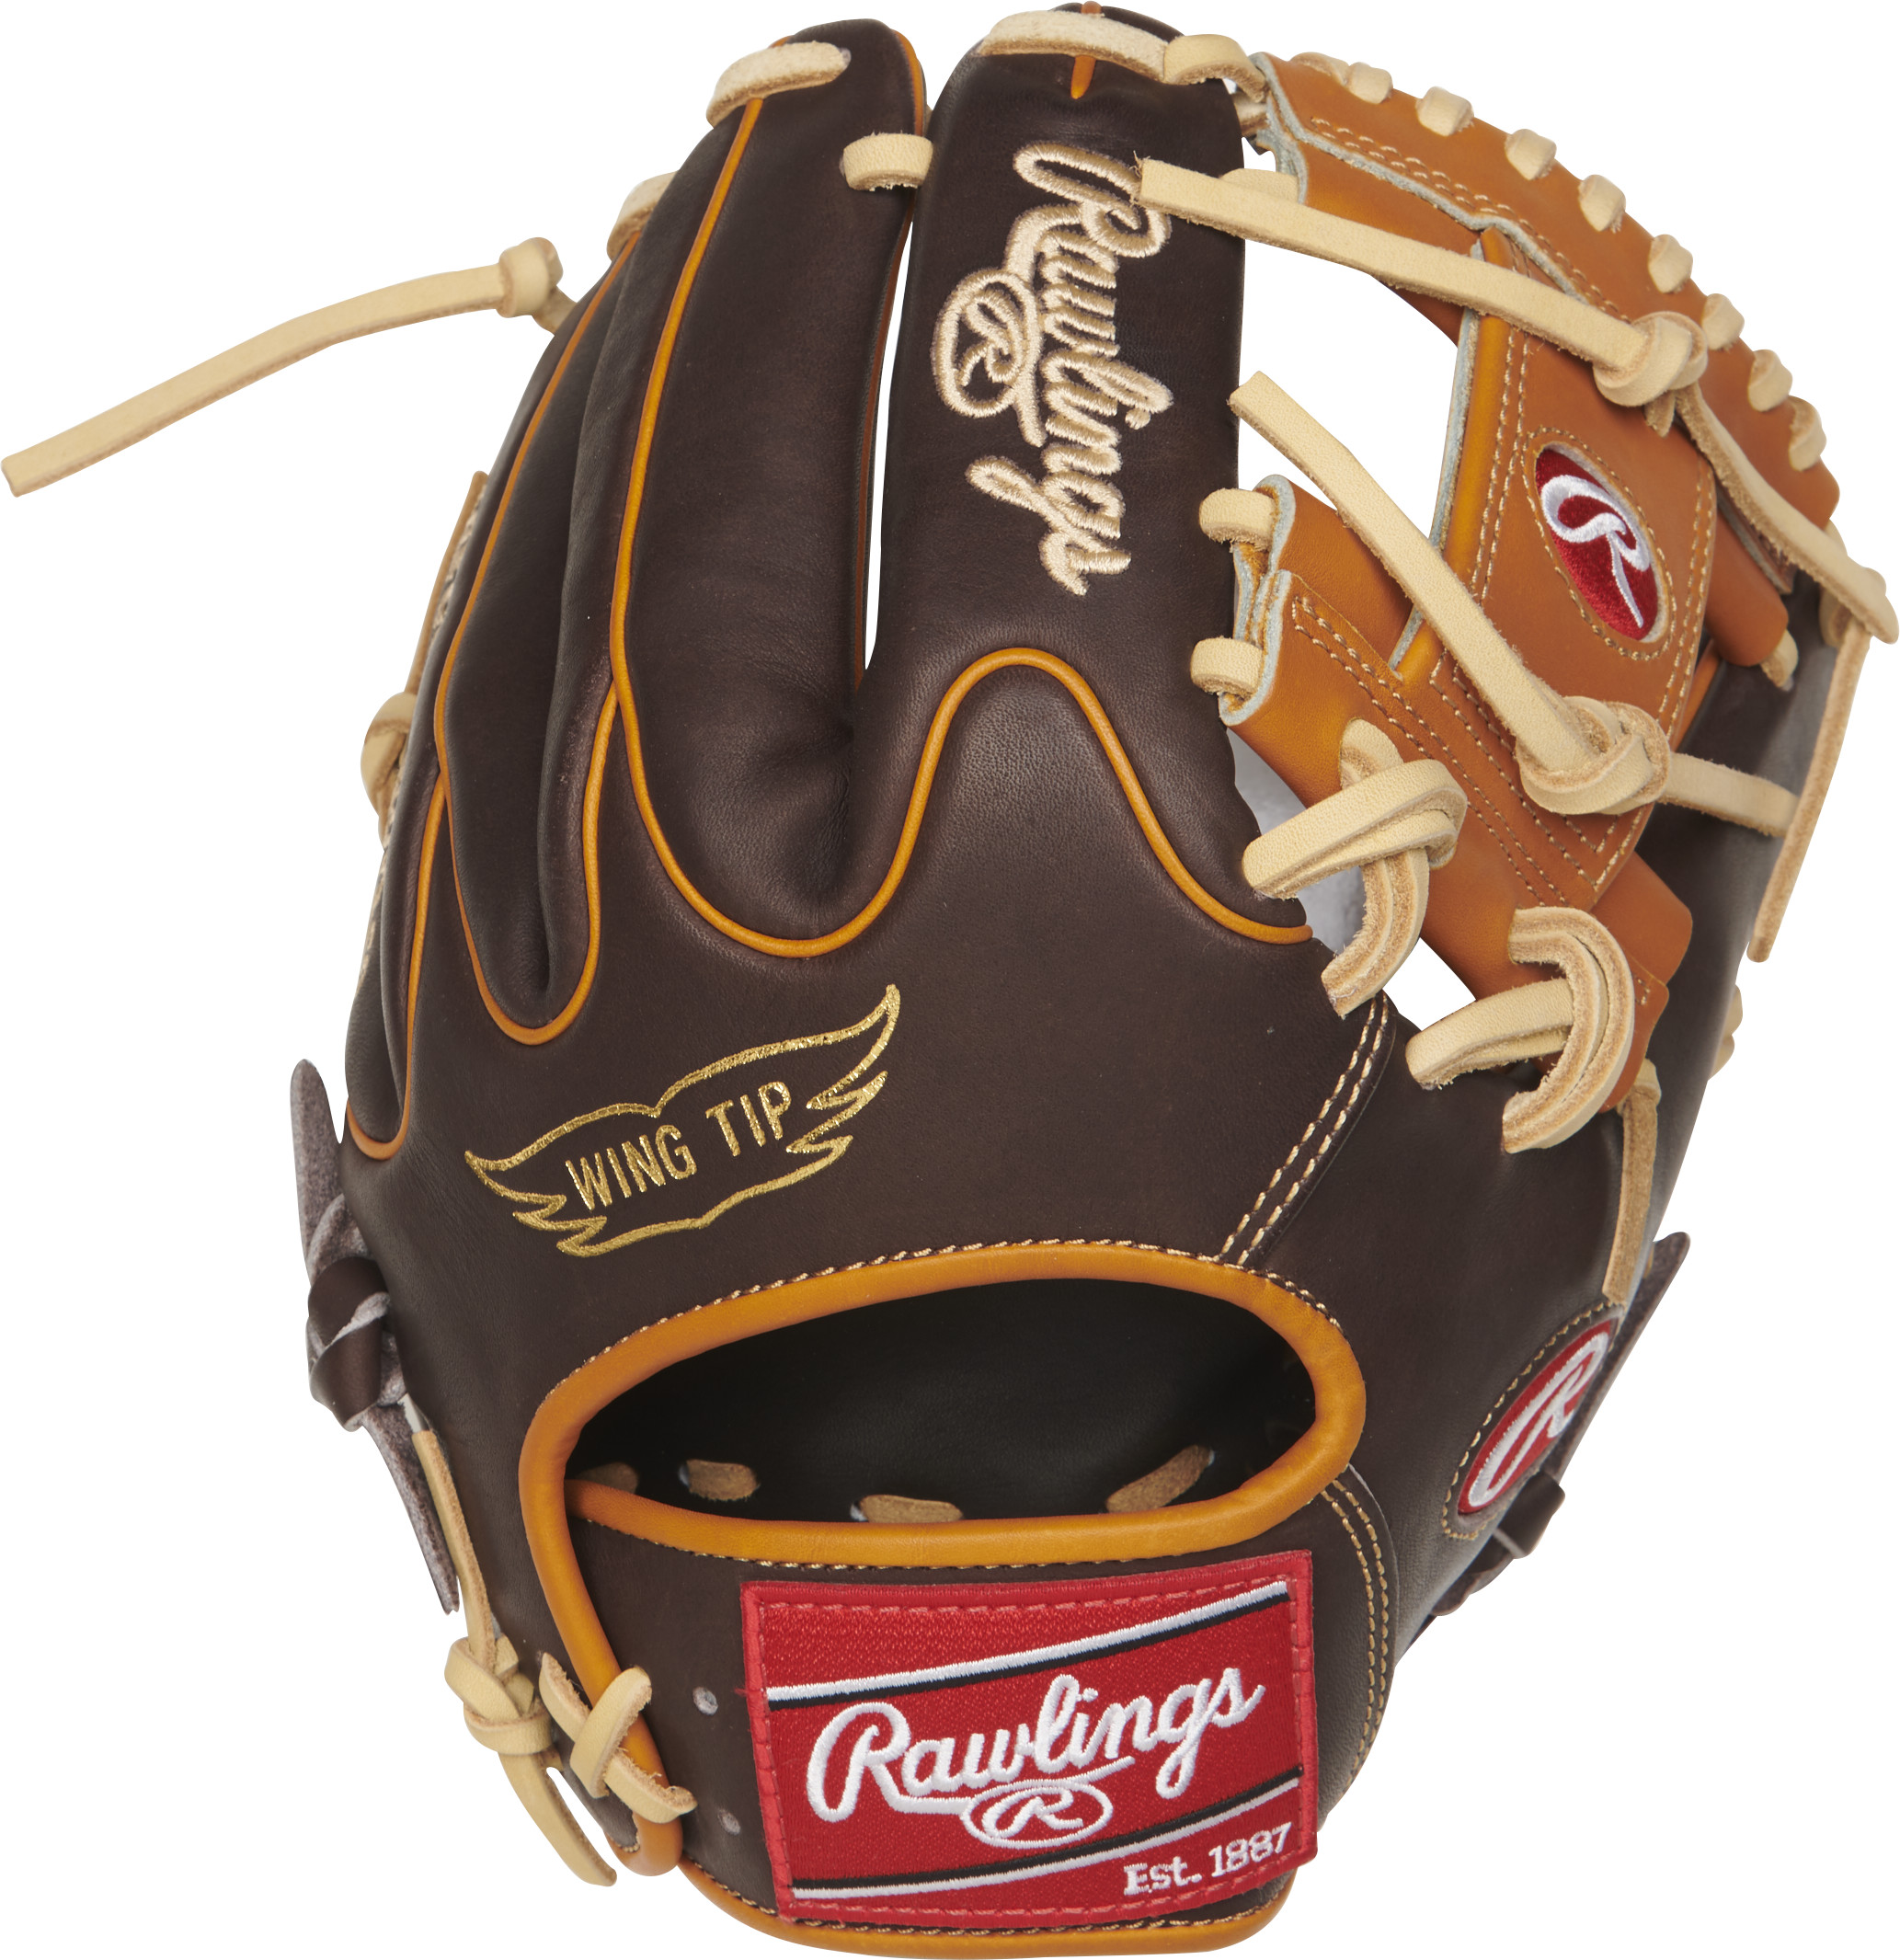 http://www.bestbatdeals.com/images/gloves/rawlings/PRO205W-2CH-2.jpg